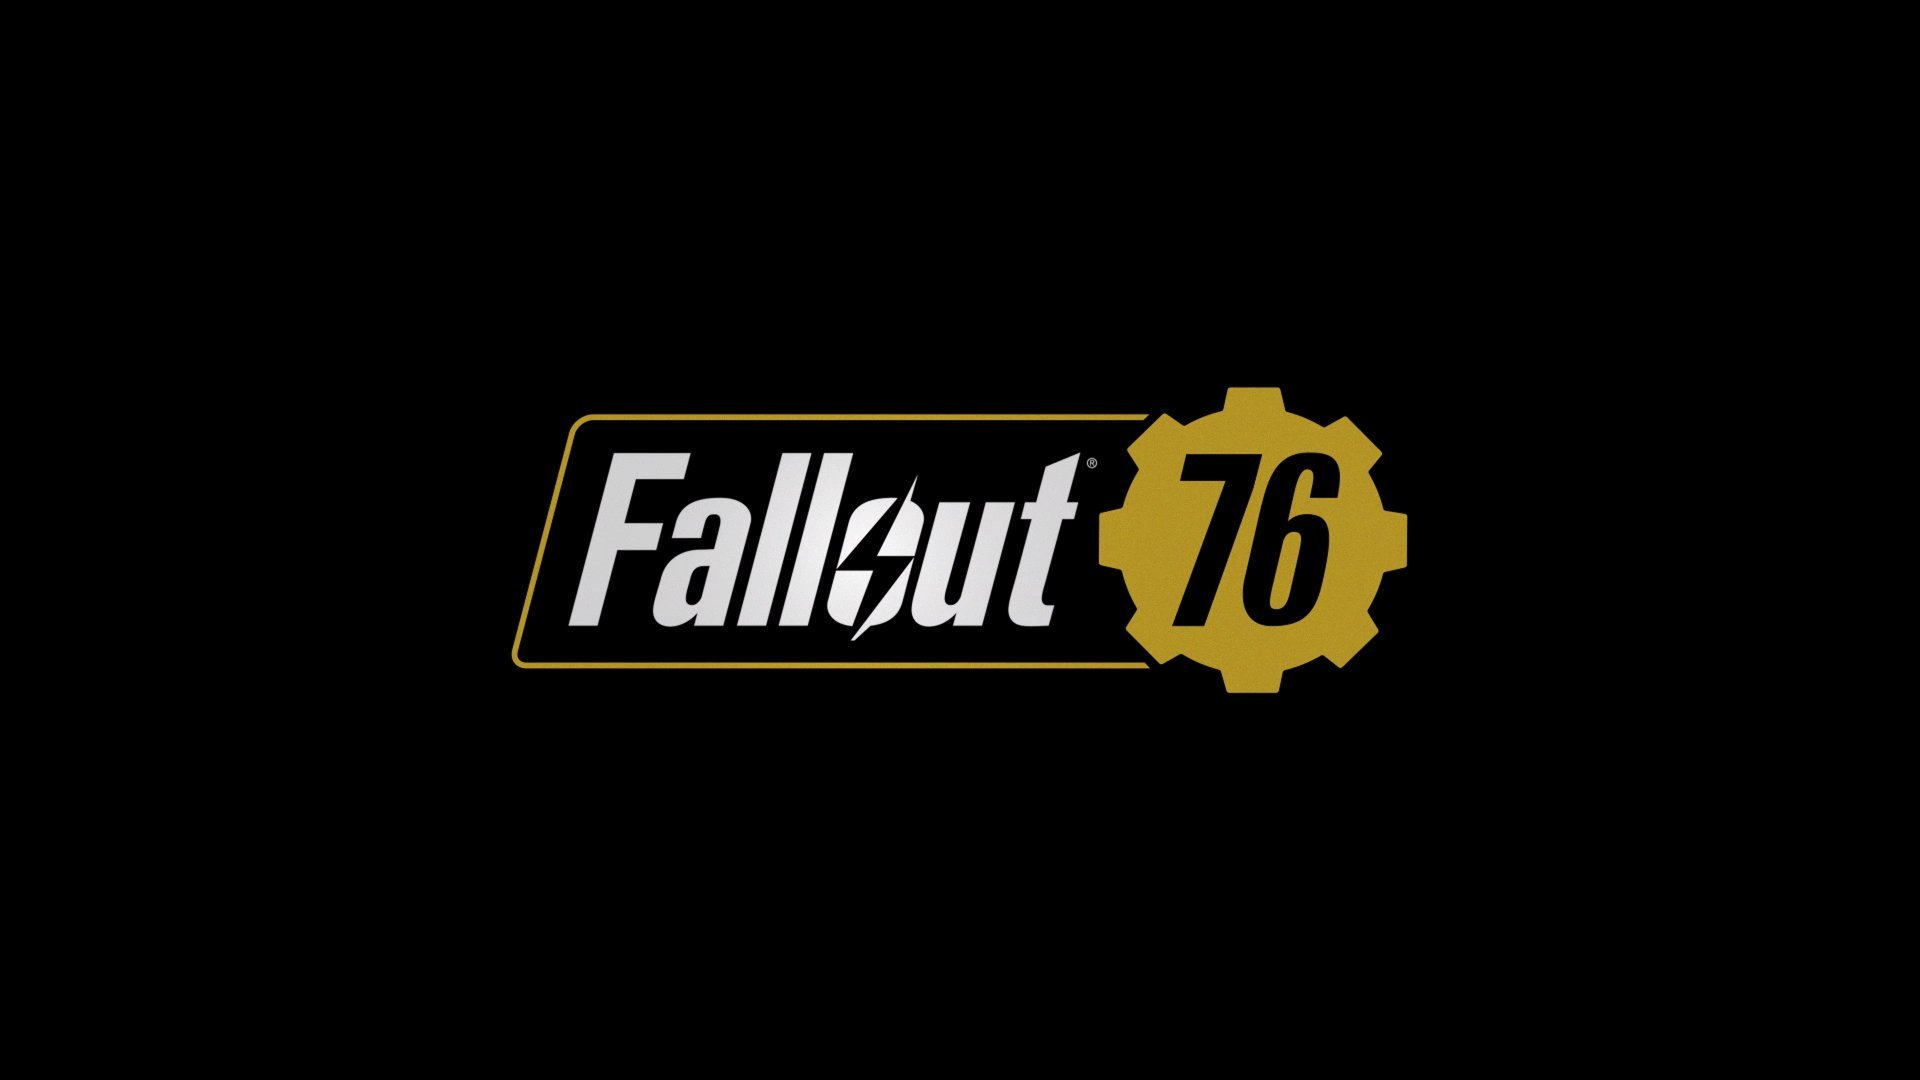 fallout 76 beta key